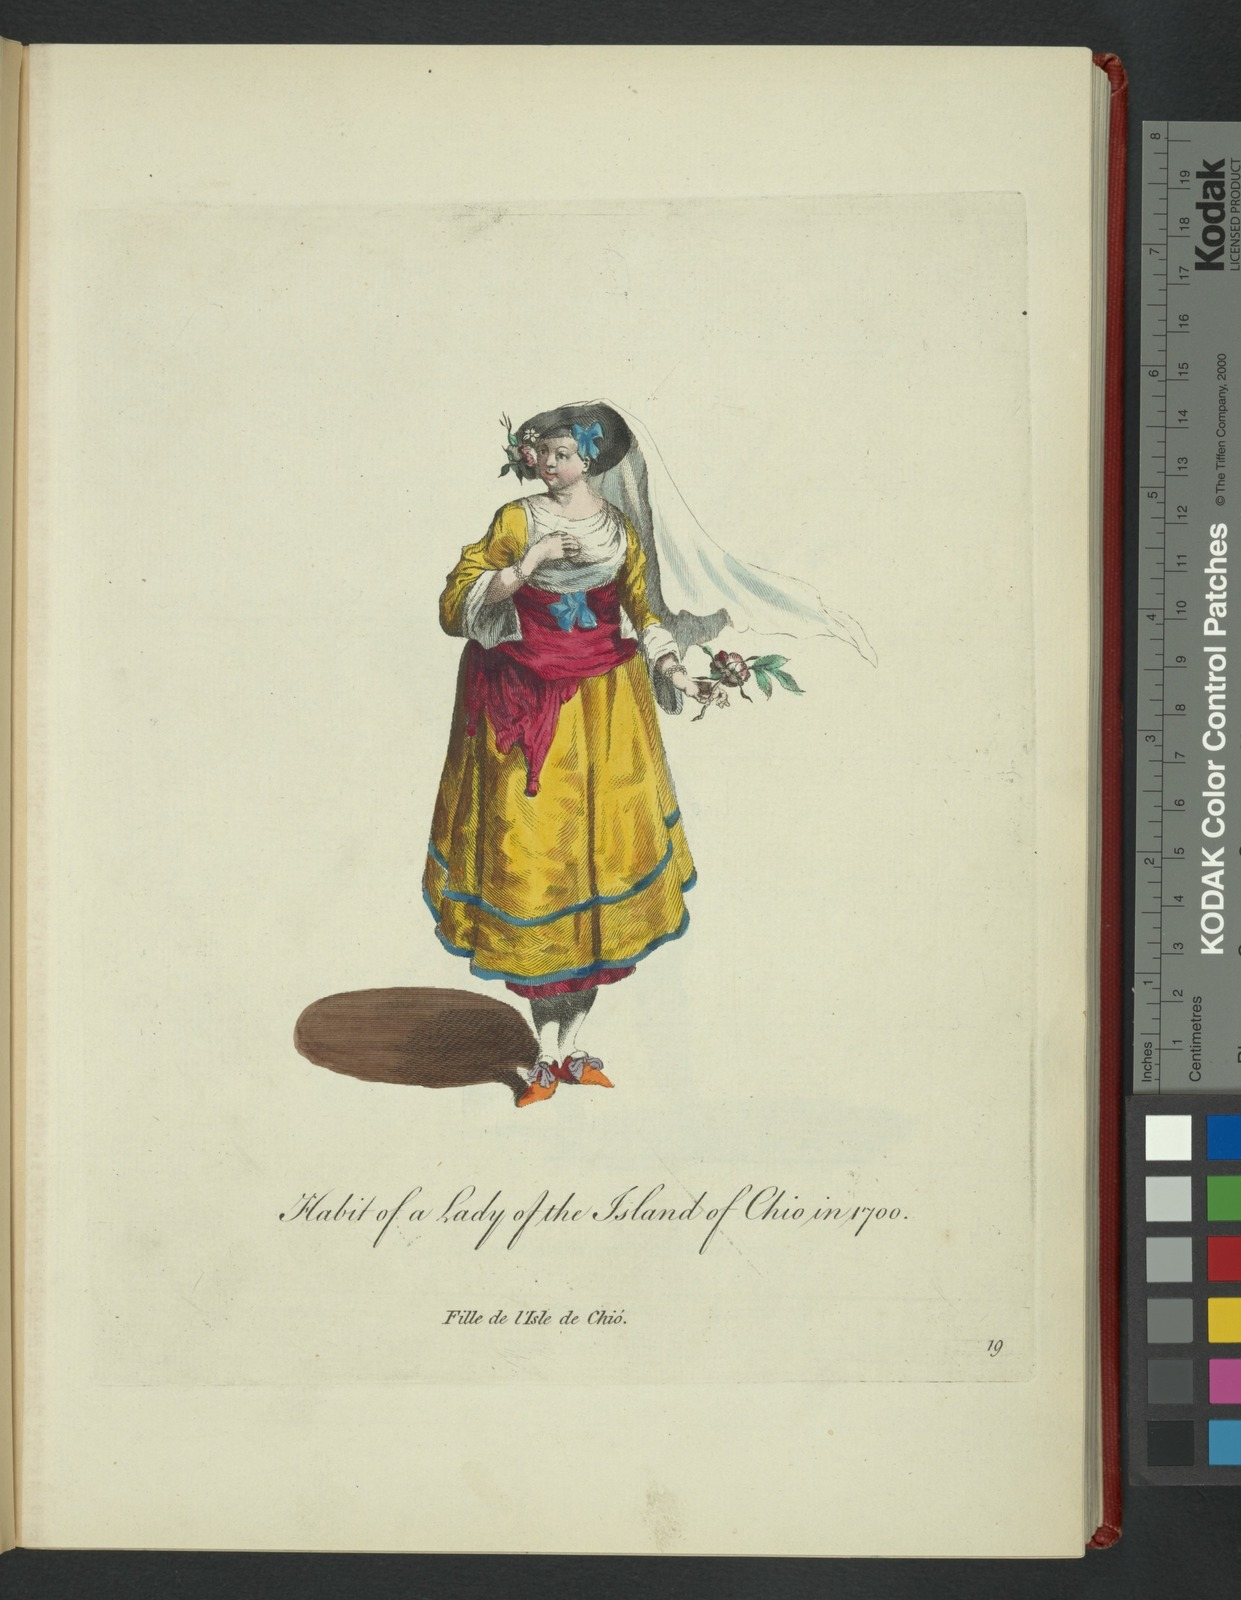 Habit of a lady of the island of Chio in 1700. Fille de l'Isle de Chió in 1700.